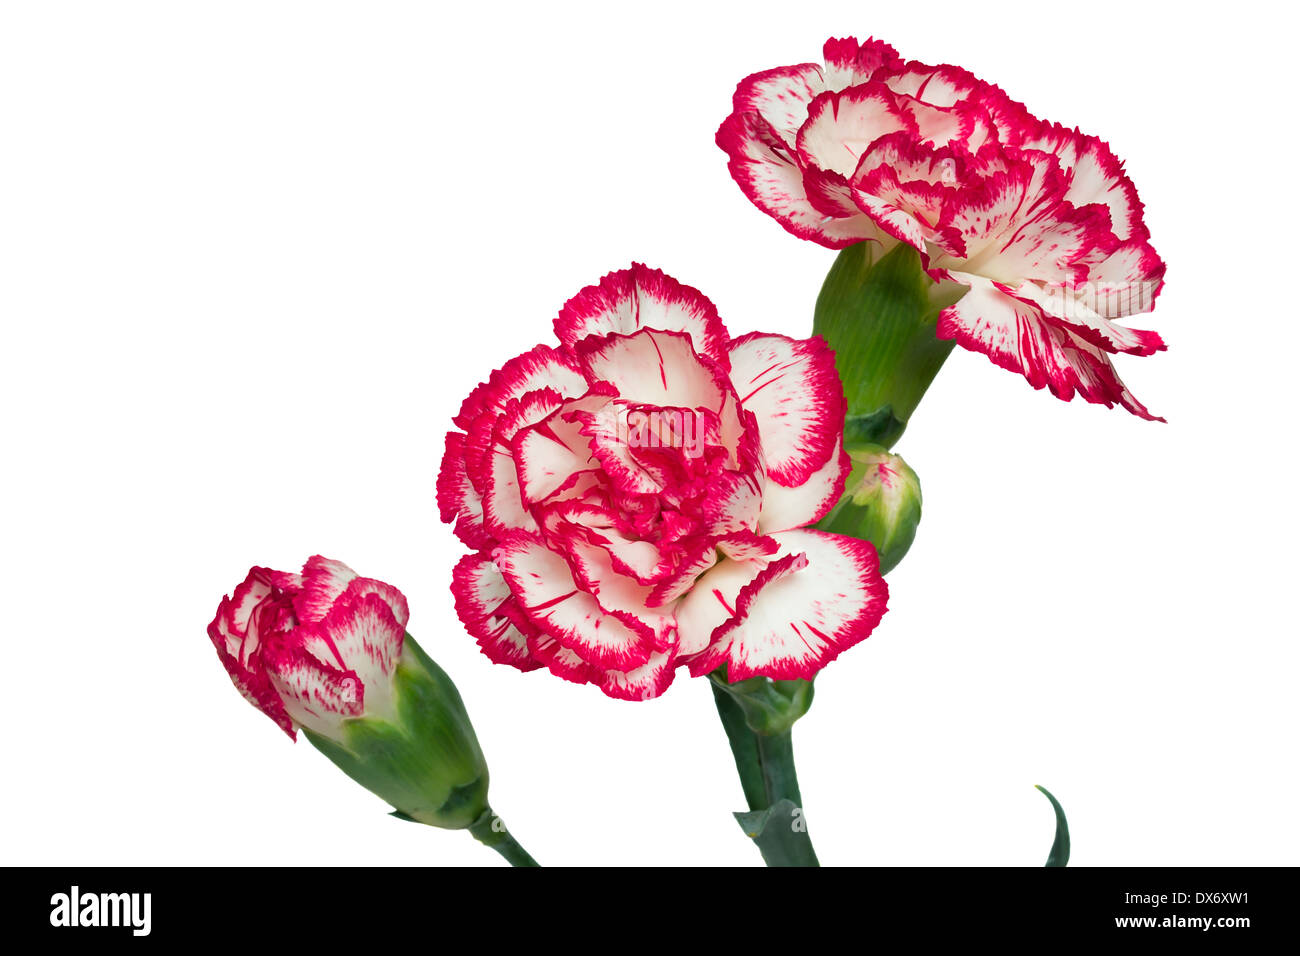 Red carnation flower isolated white pink flowers beautiful stock beautiful flowers are pink with a white carnation buds and petals presented on a mightylinksfo